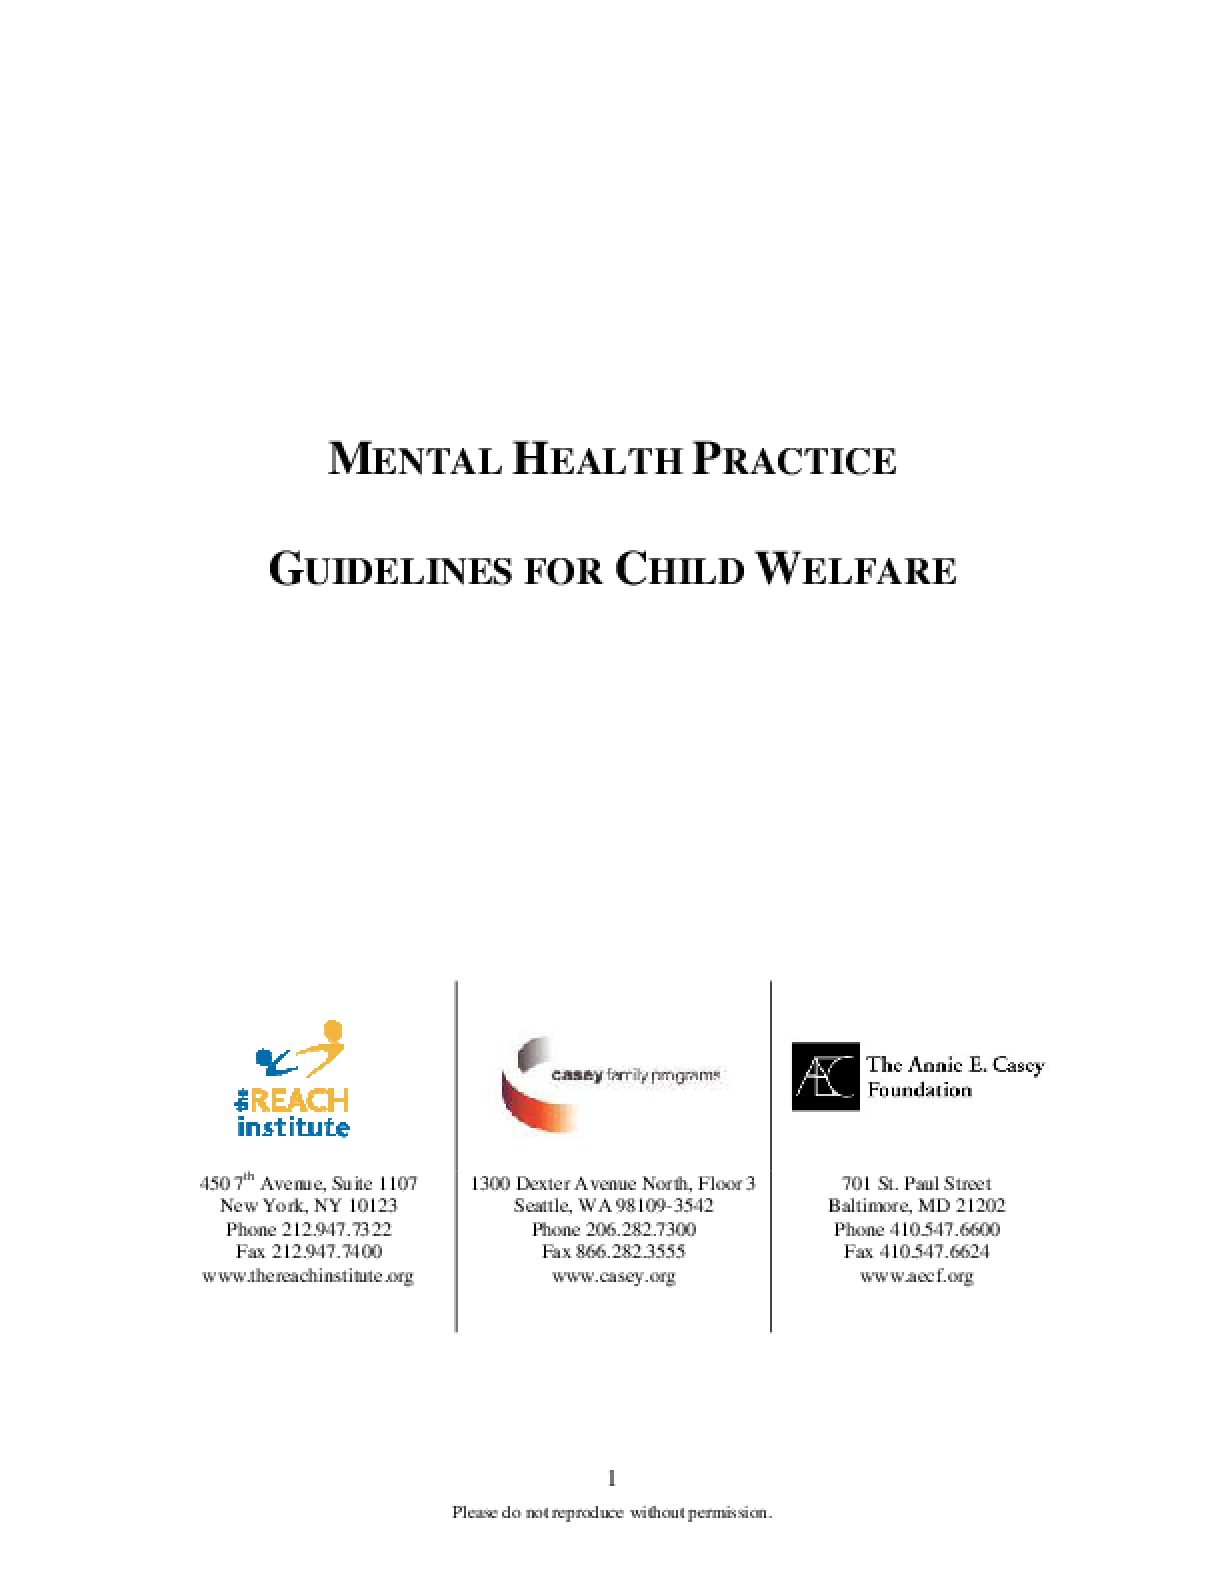 Mental Health Practice: Guidelines for Child Welfare